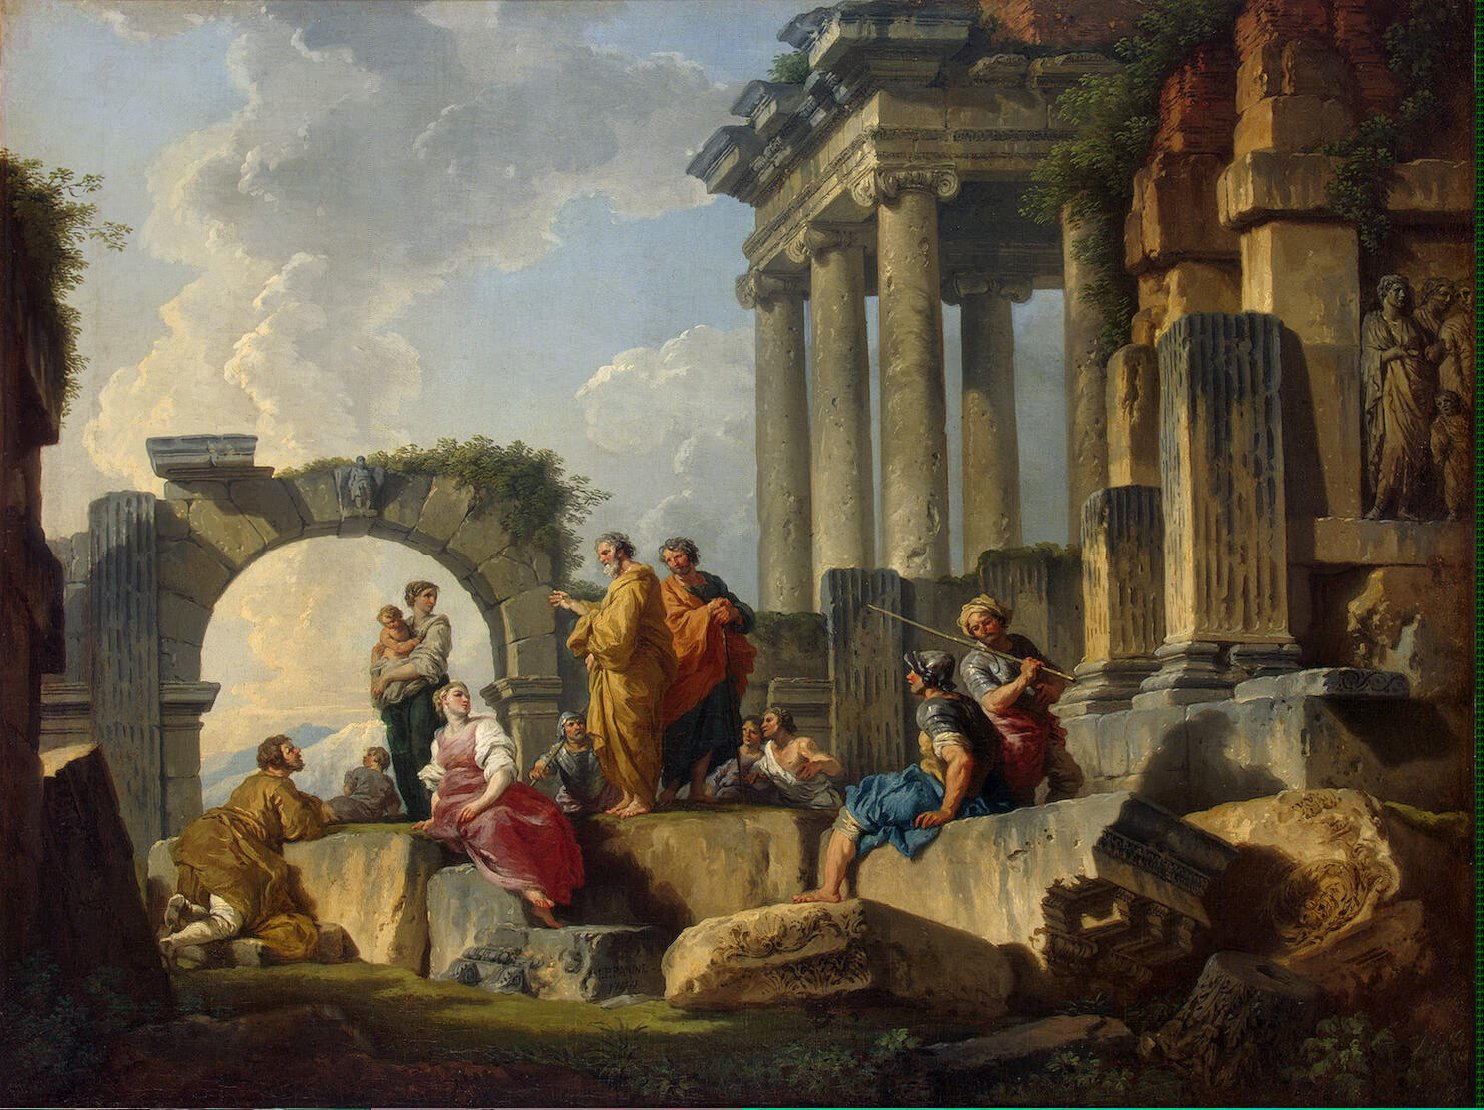 Giovanni Paolo Pannini - Sermon of St Paul amidst the Ruins, 1744